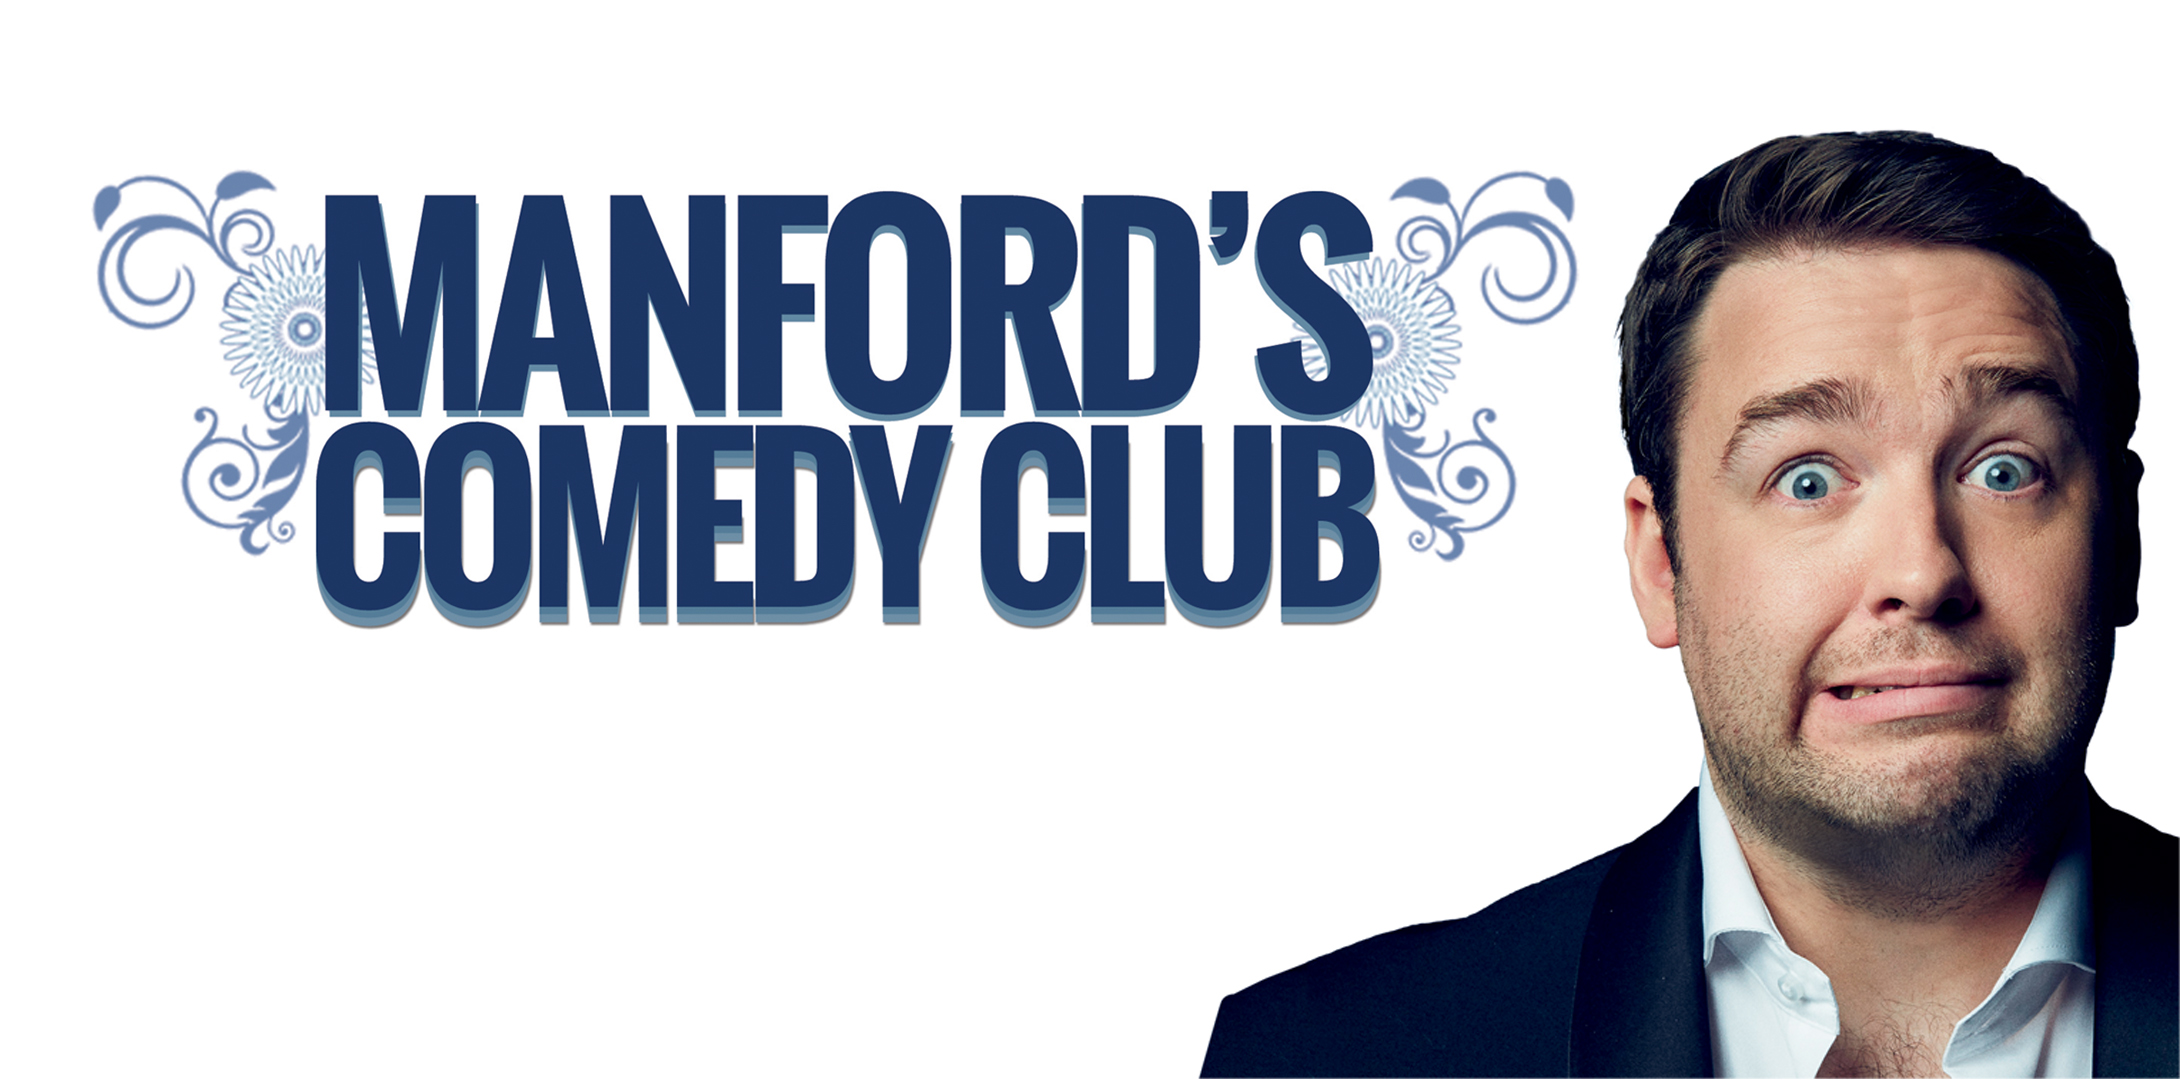 Manford's Comedy Club New Act of the Year 2020 Competition Heat